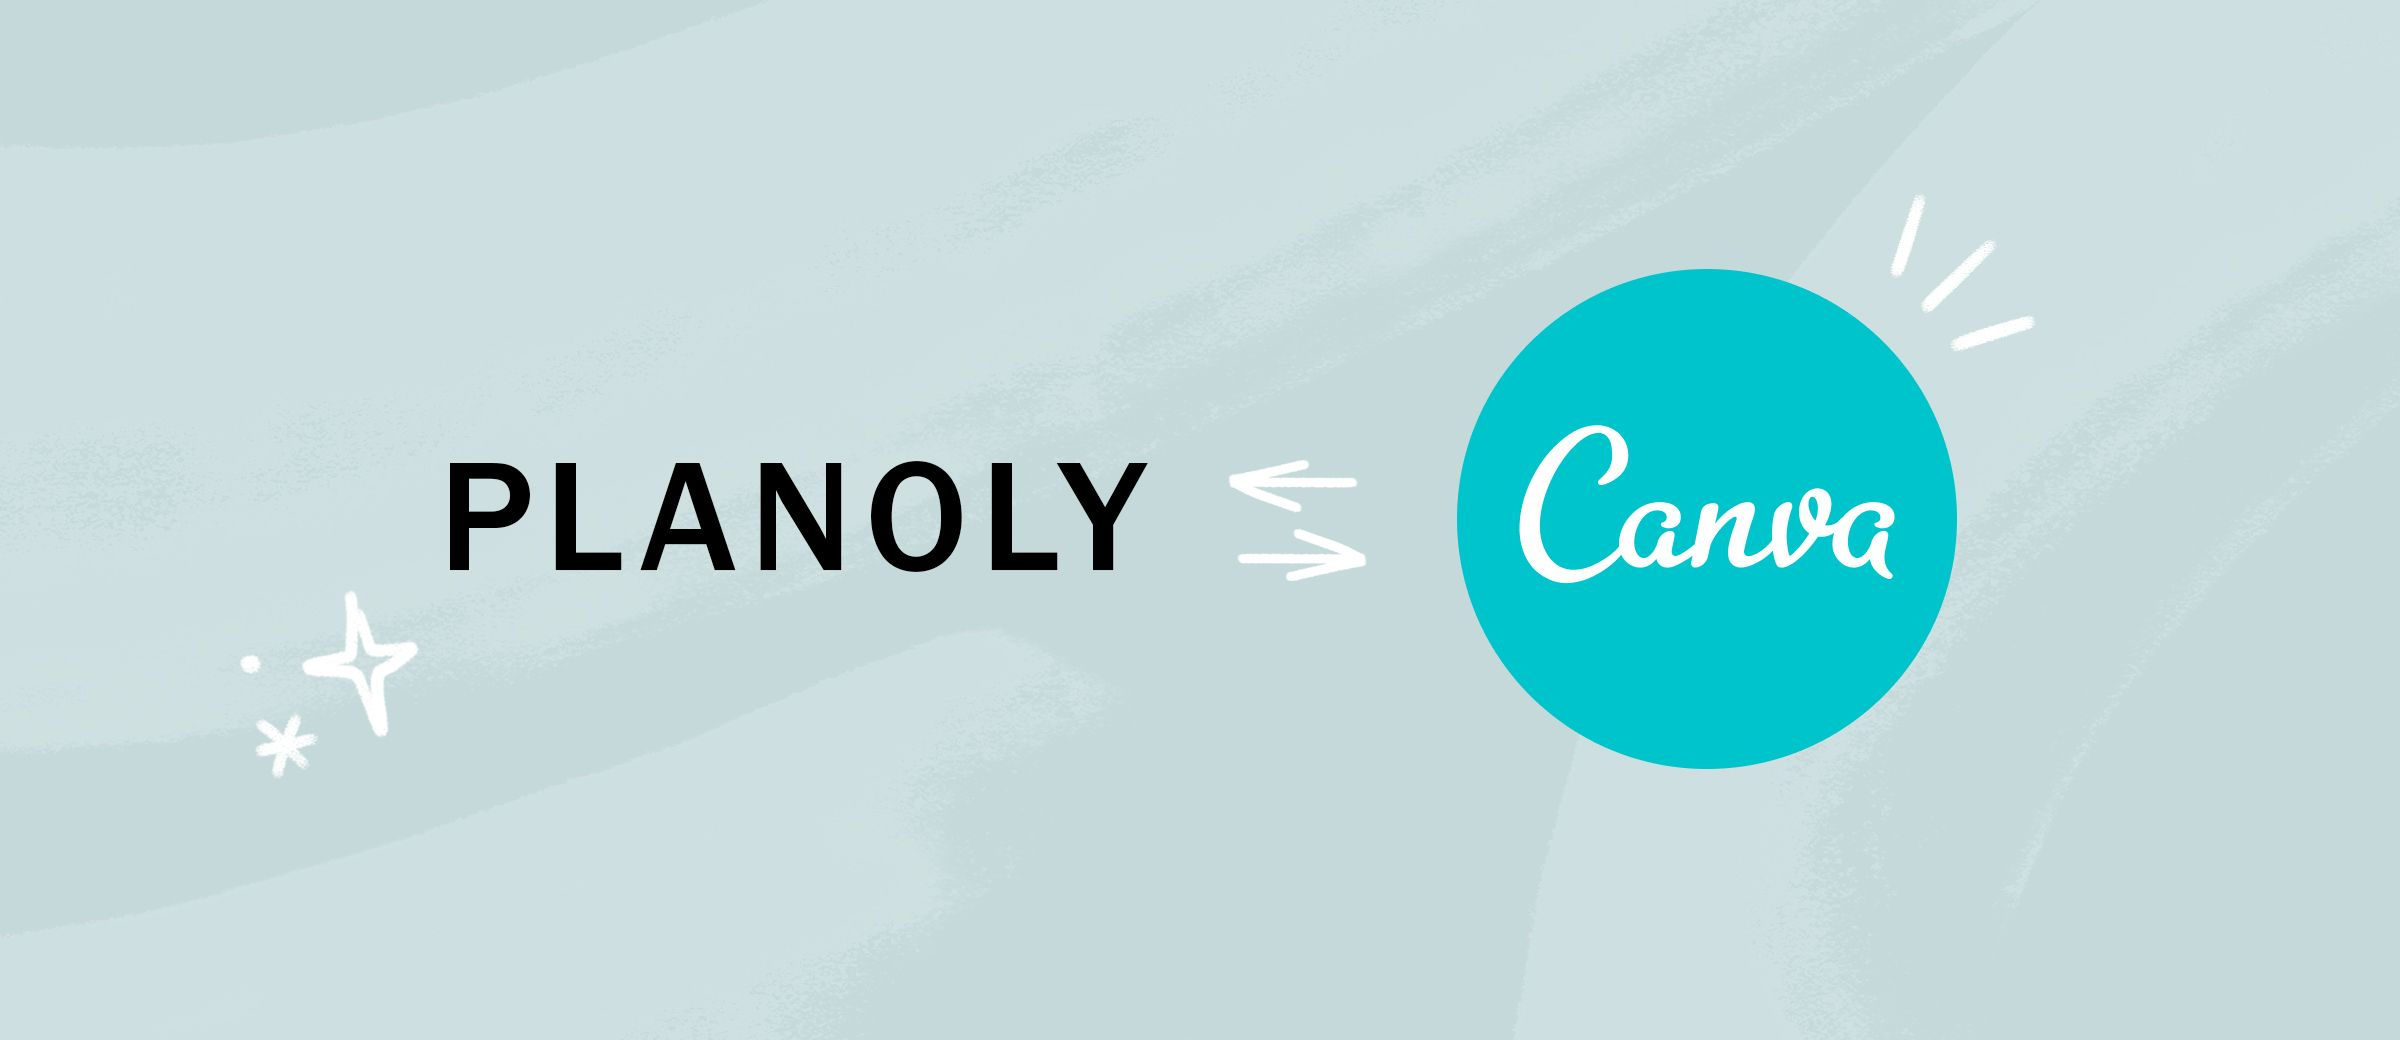 Read about How to Use Canva on PLANOLY, on PLANOLY